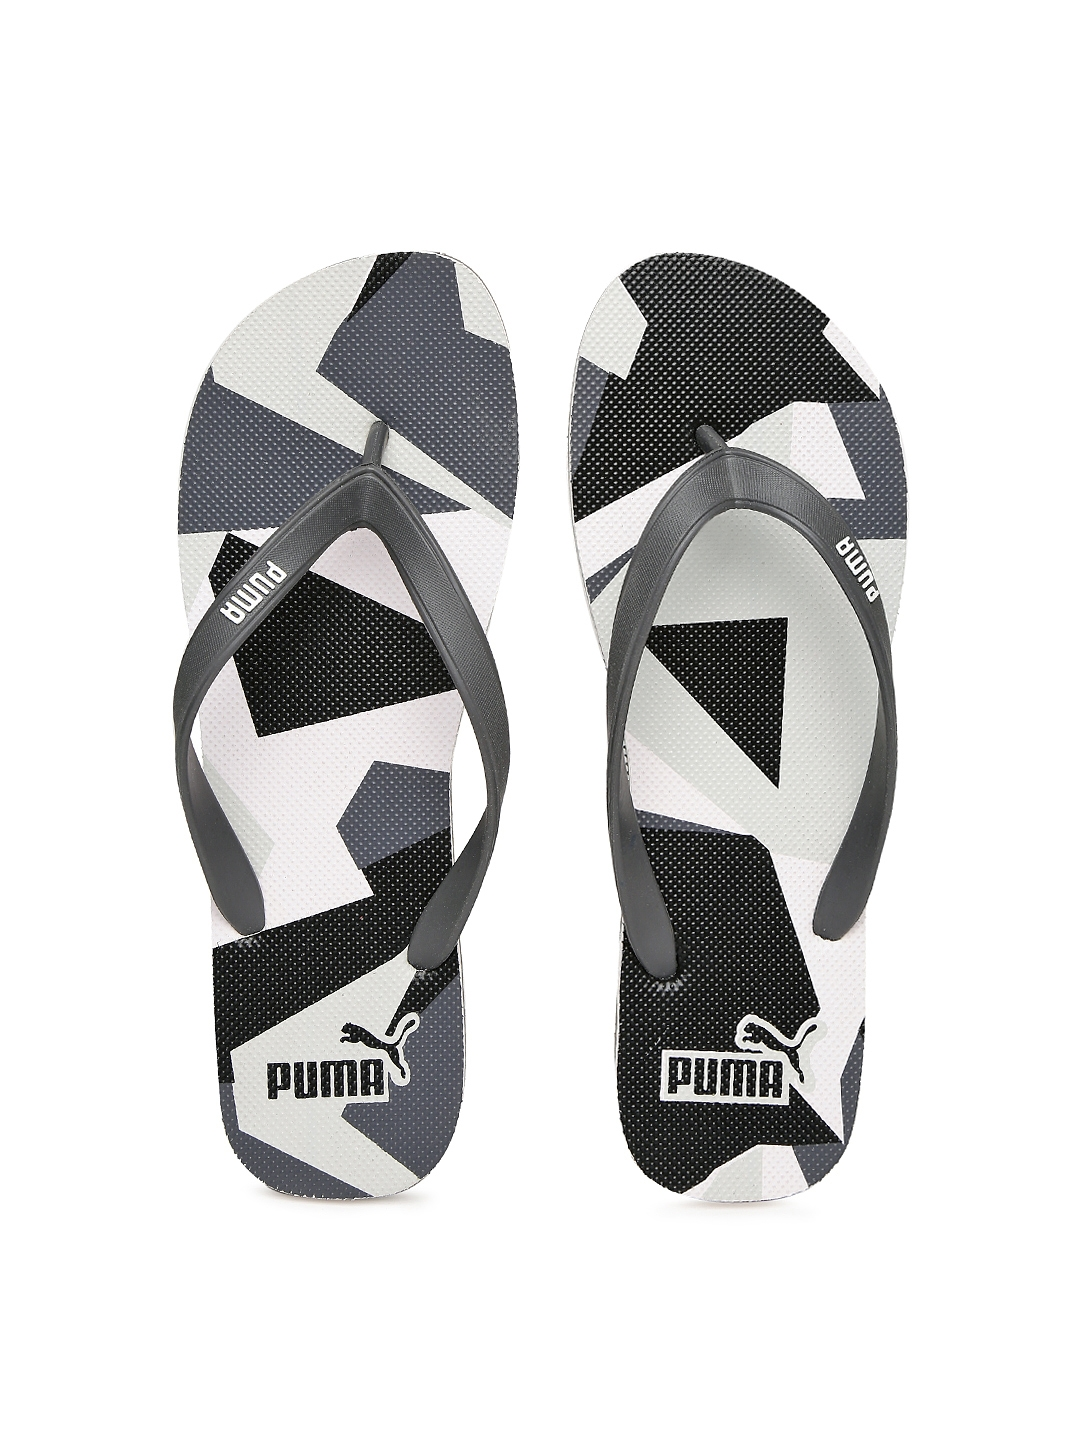 92449dd5cb5 puma slippers on flipkart on sale   OFF78% Discounts